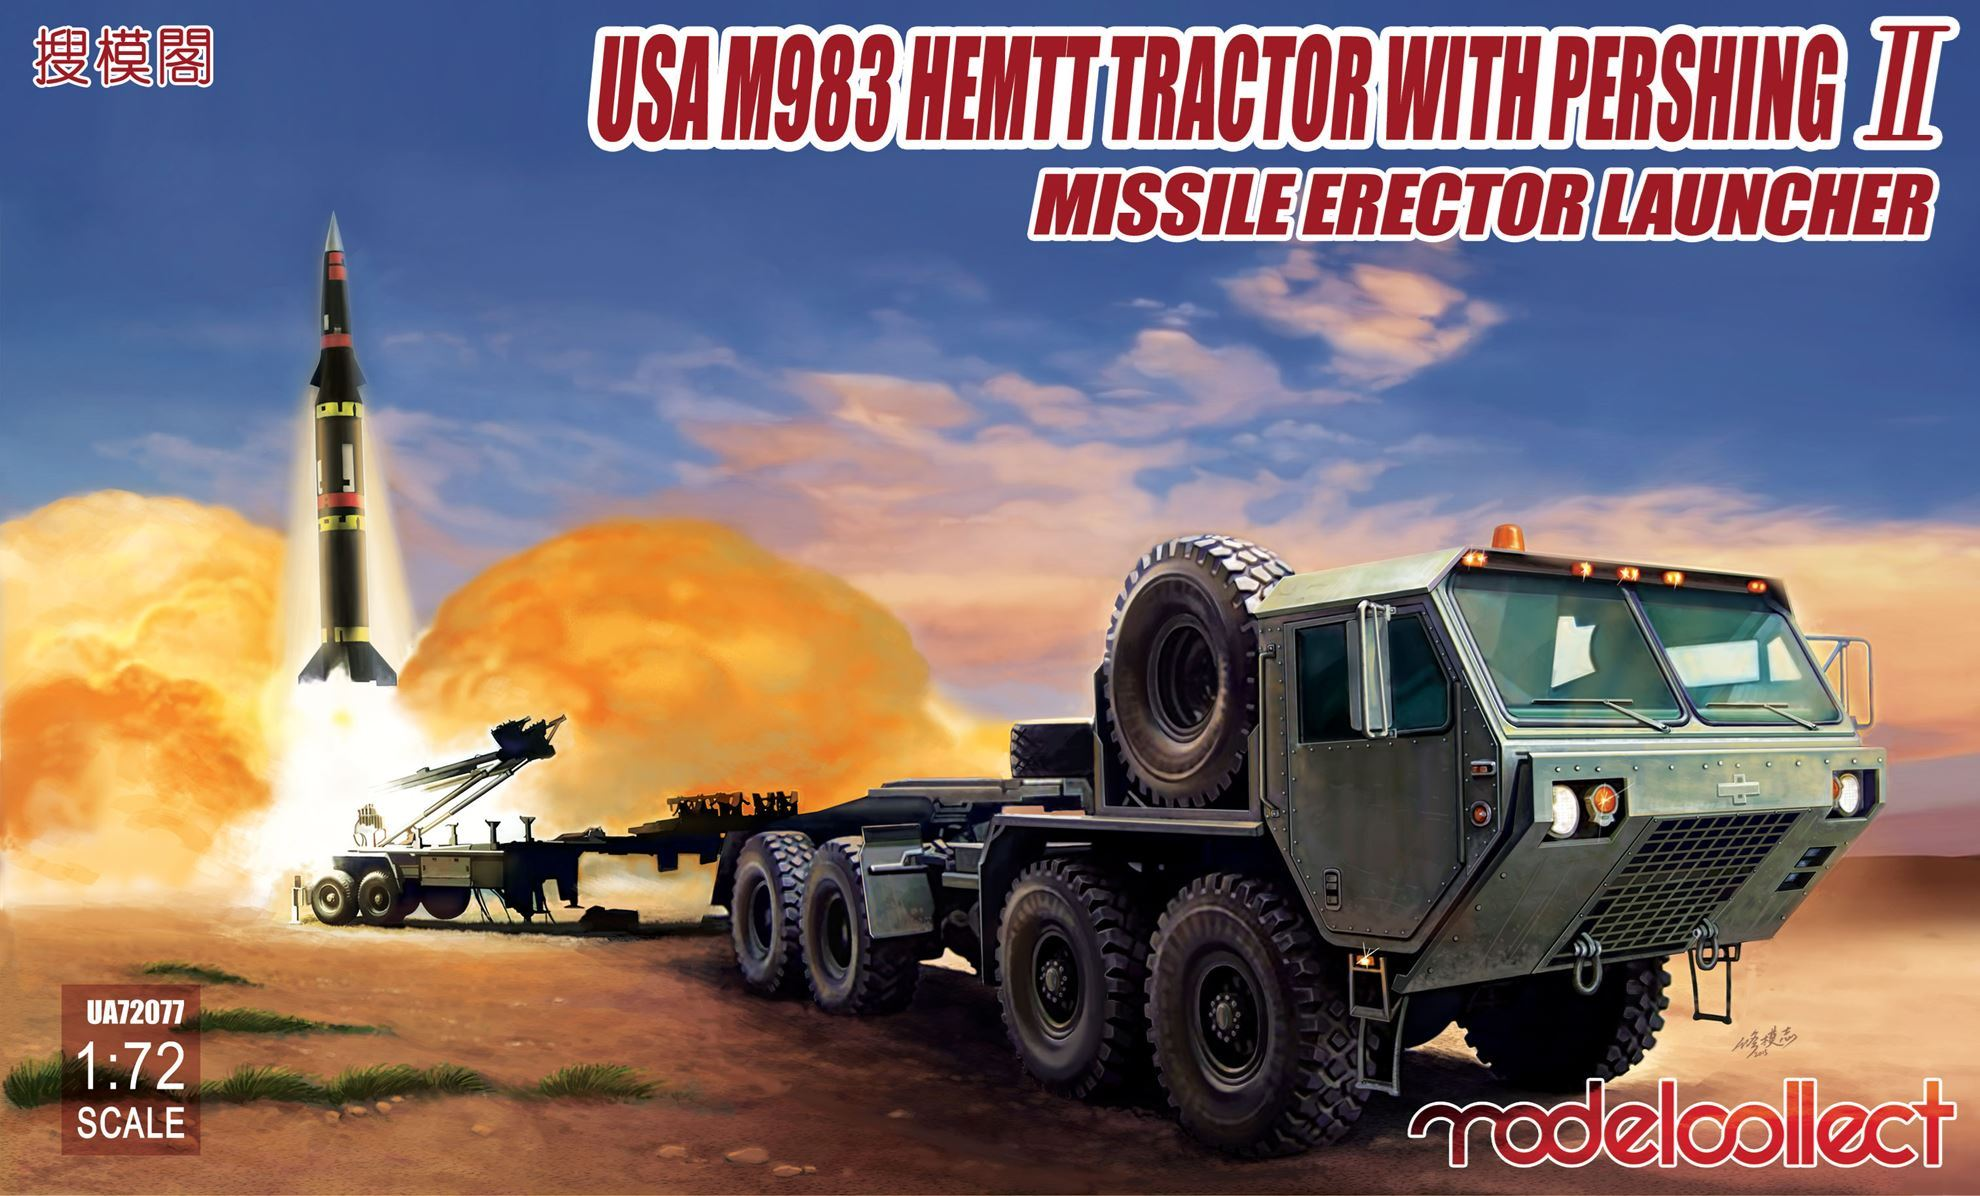 HEMTT CIWS - Page 2 0000213_usa-m983-hemtt-tractor-with-pershing-ii-missile-erector-launcher